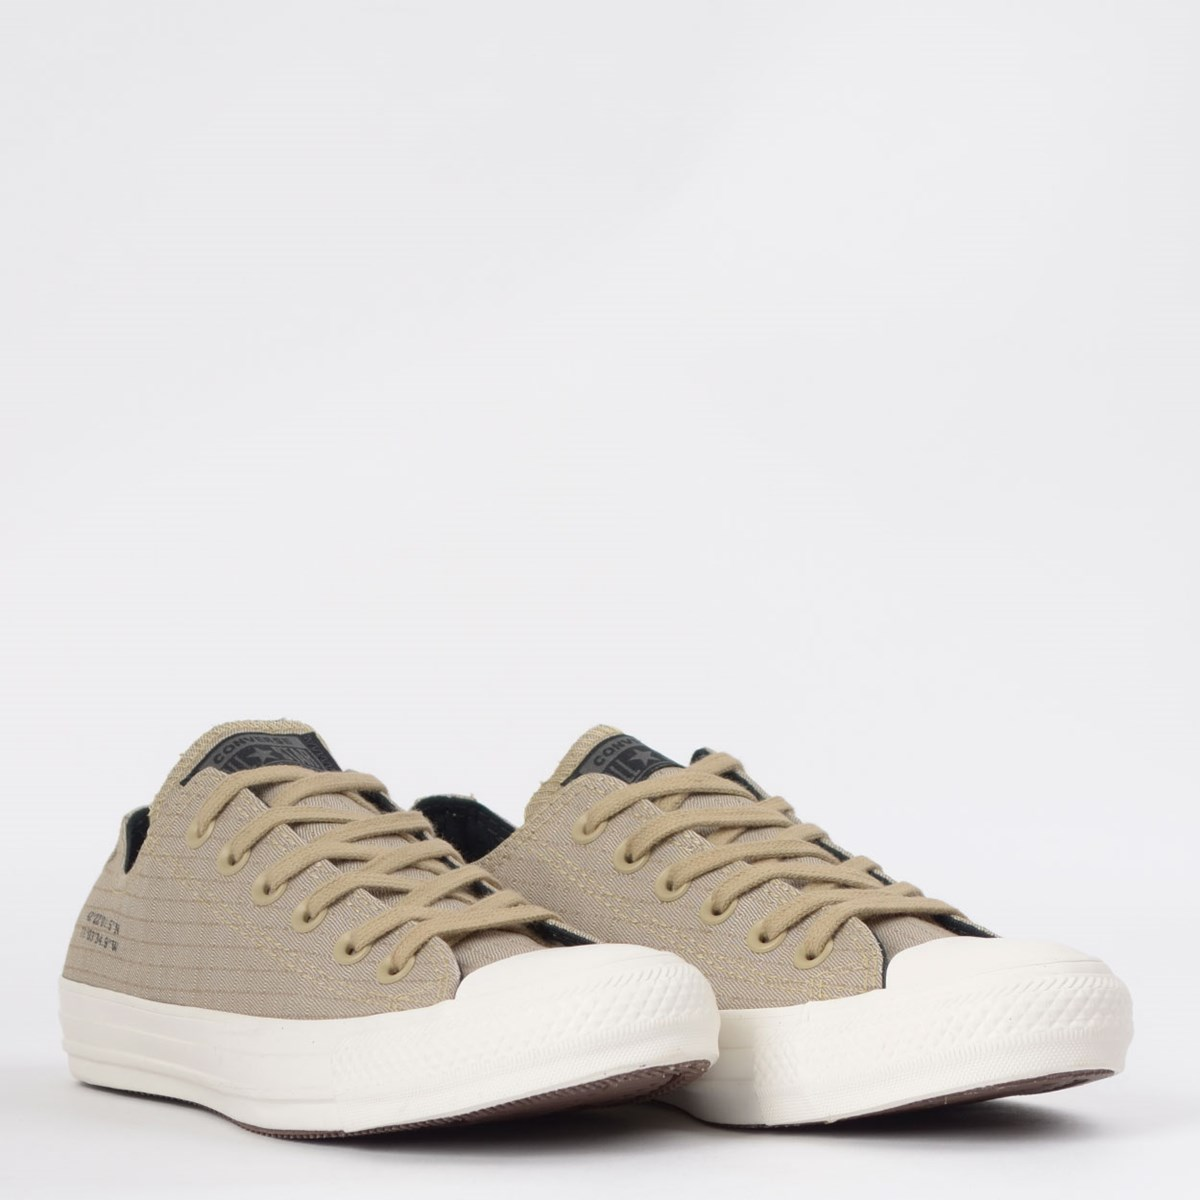 Tênis Converse Chuck Taylor All Star Ox Caqui CT13990002